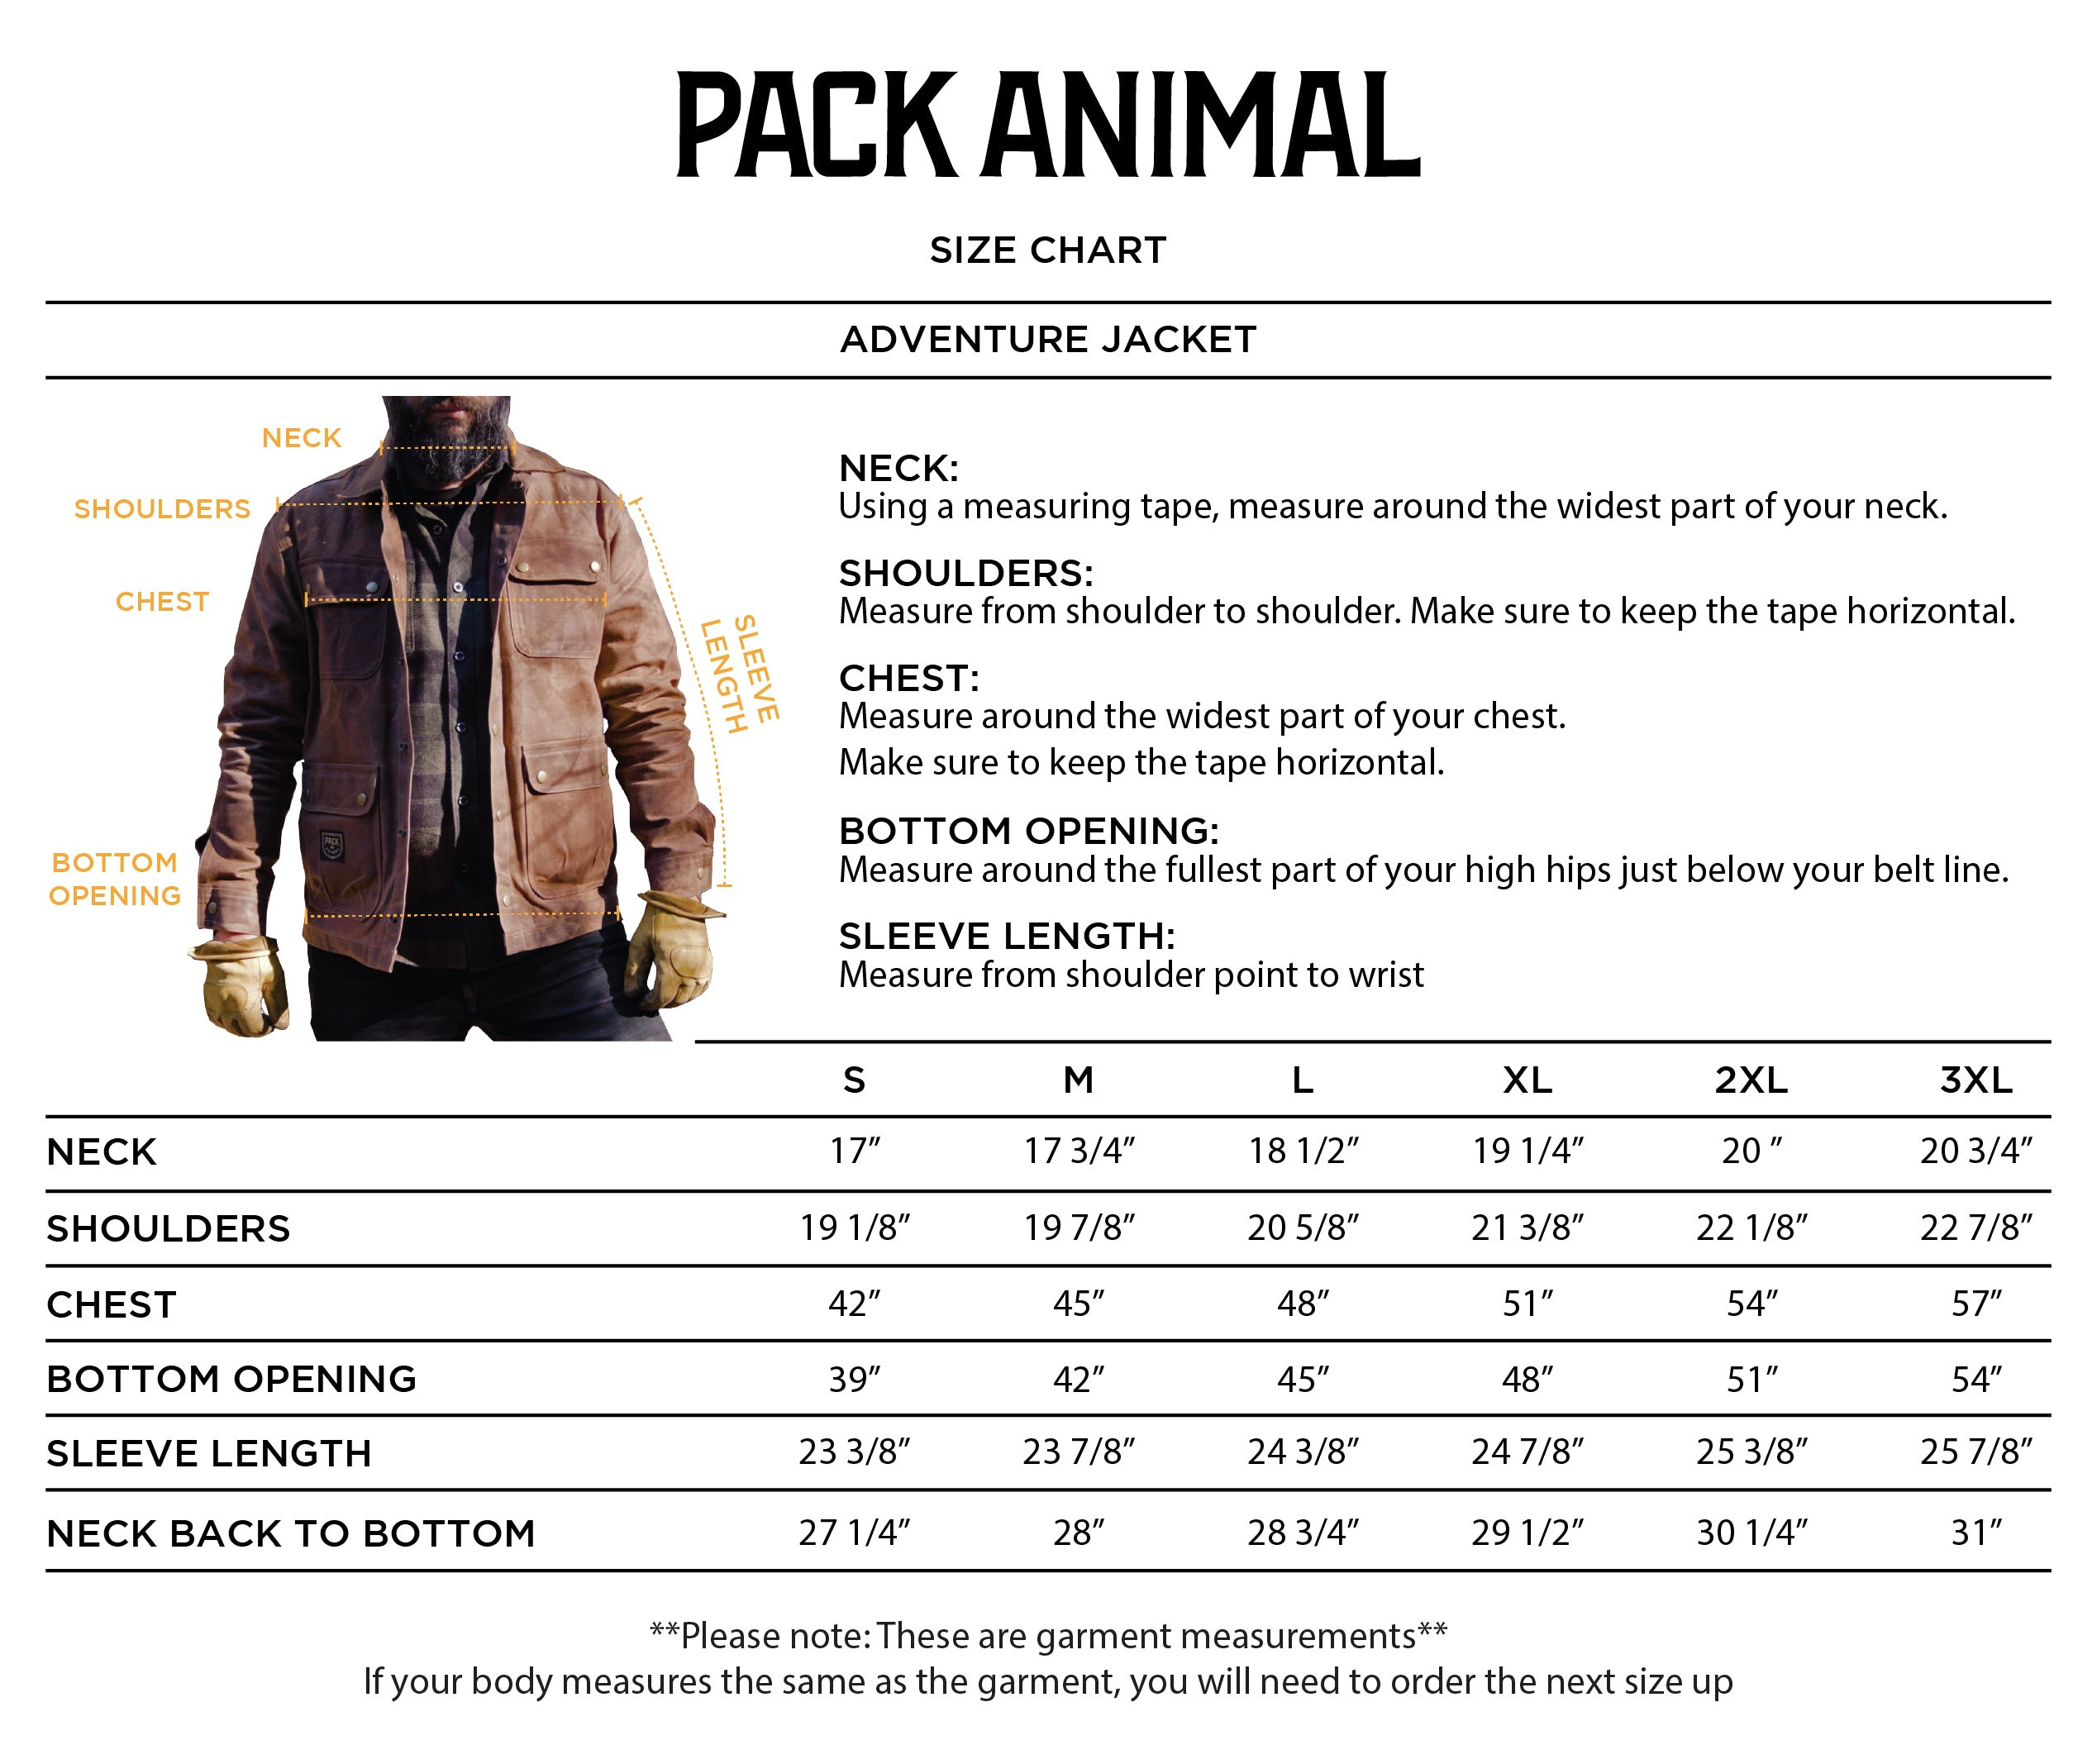 Adventure Jacket Size Guide